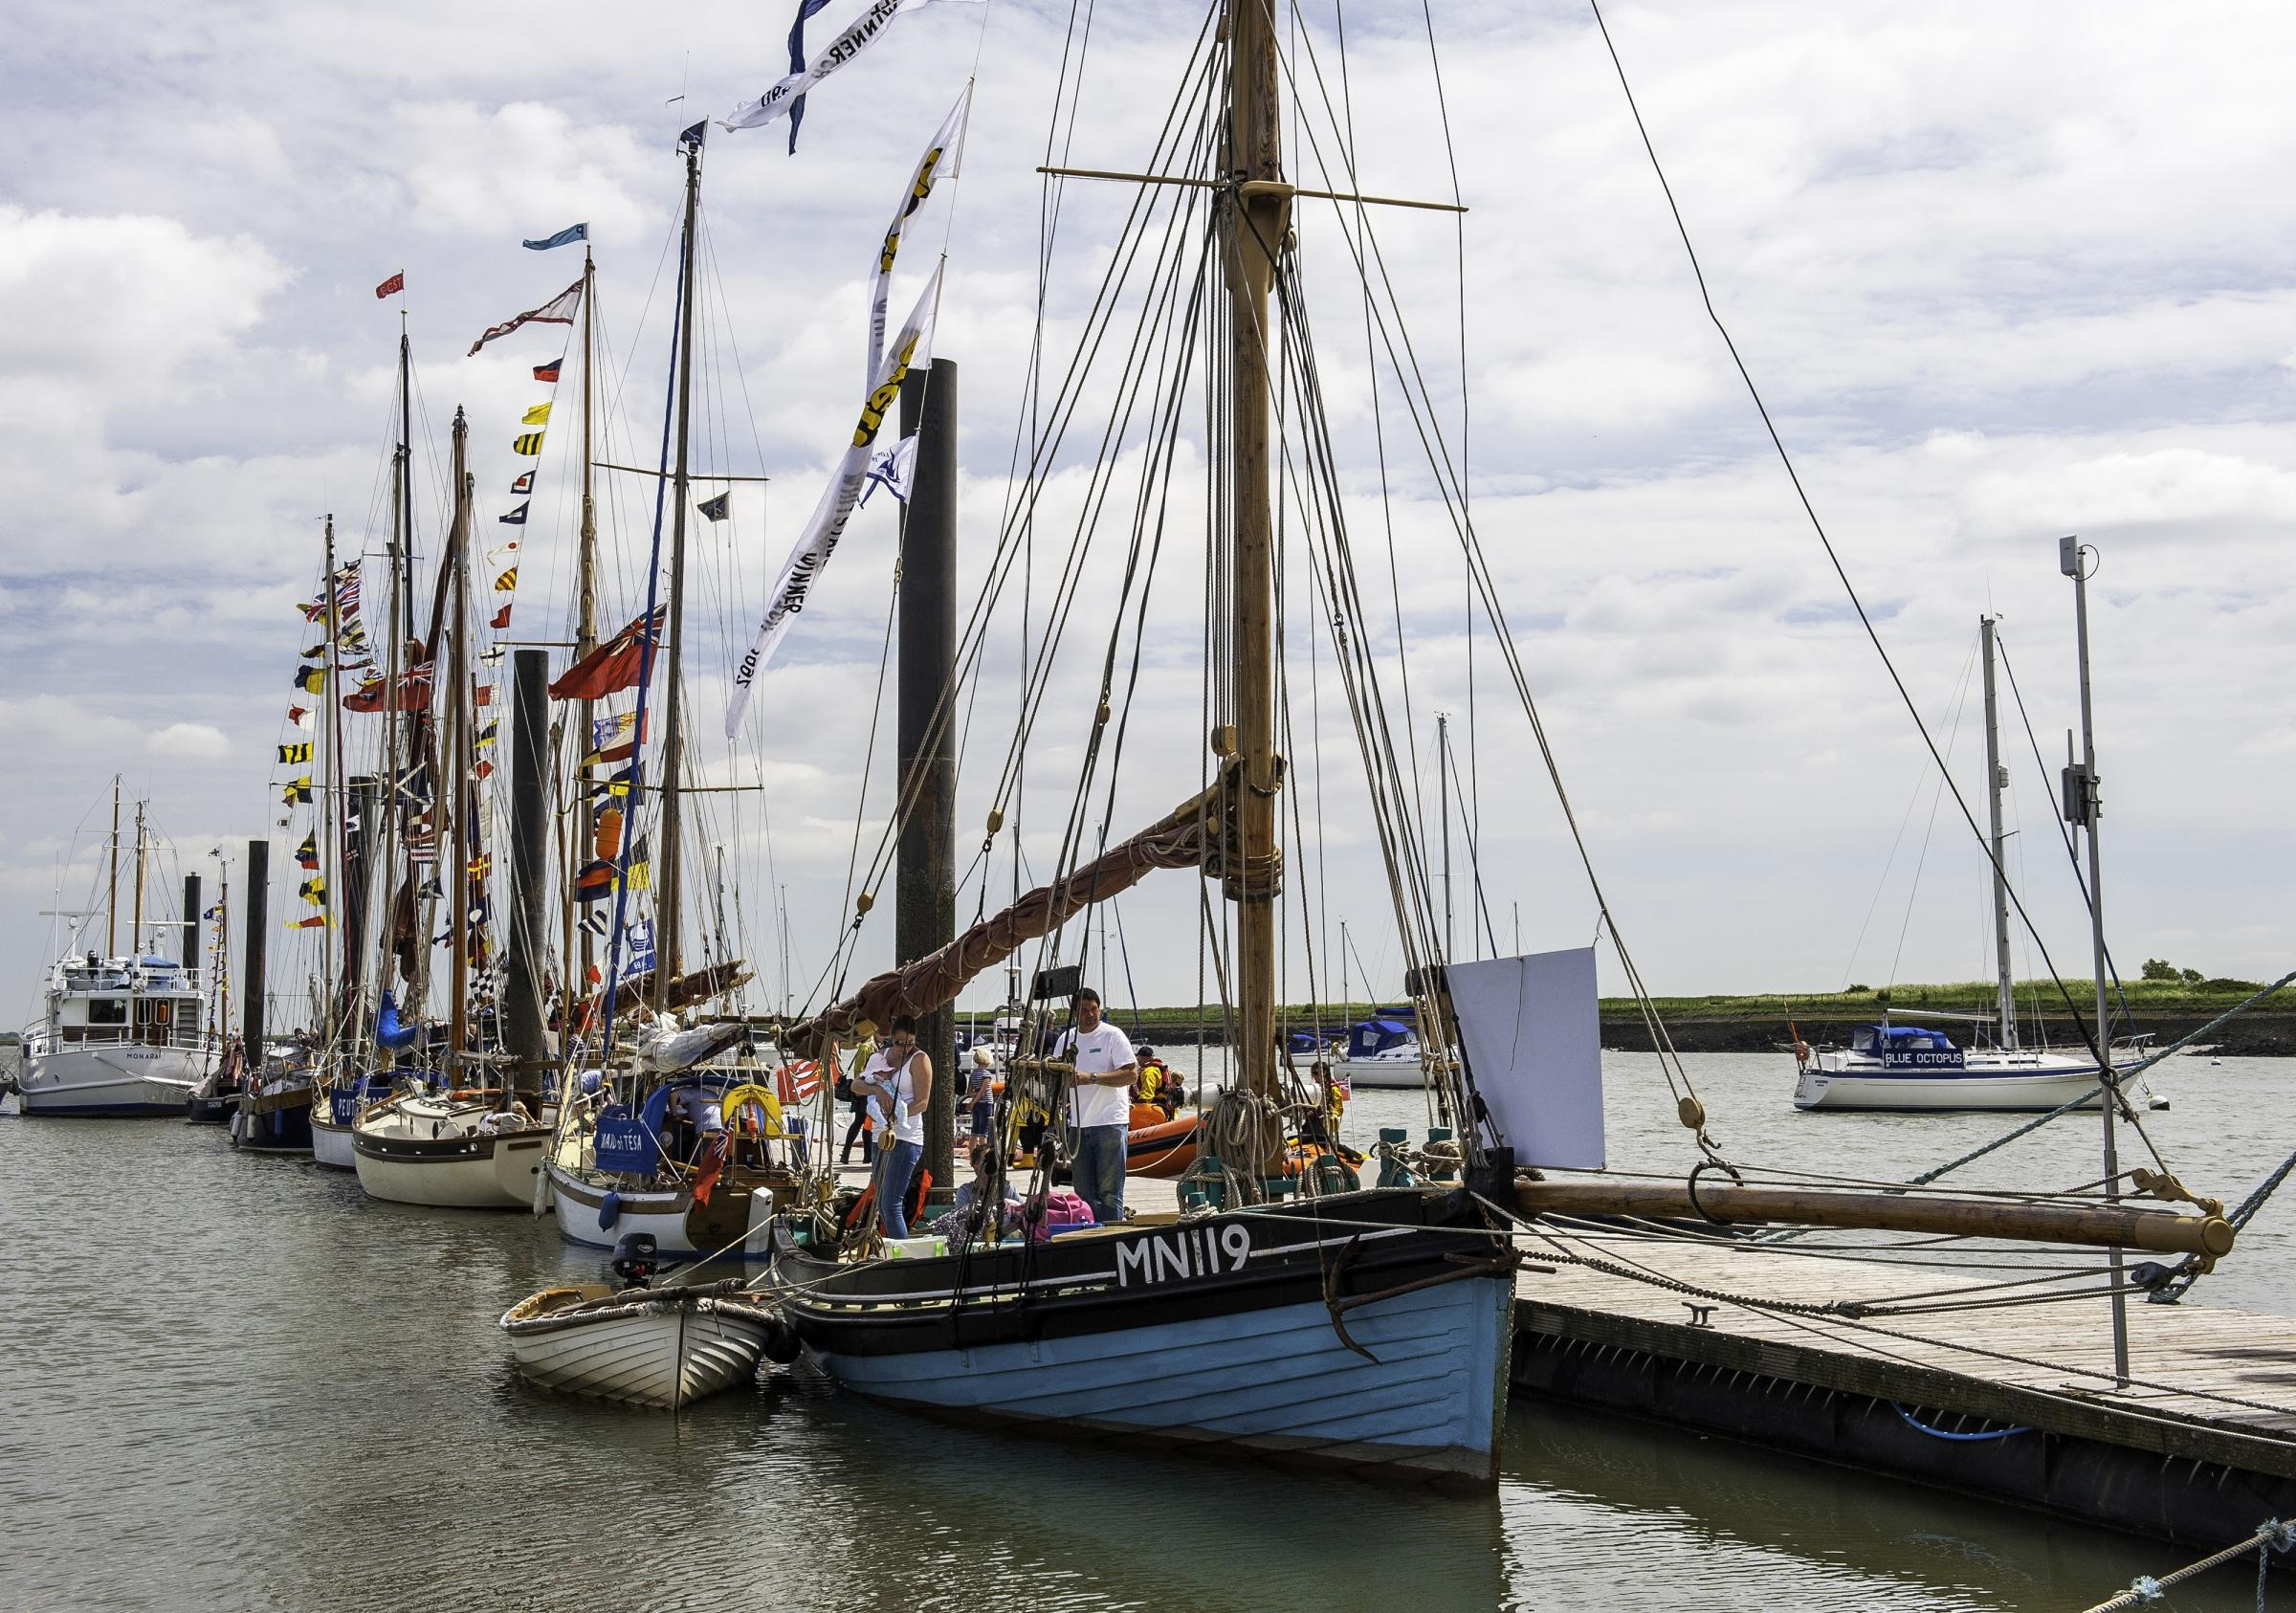 RIVER FEST: Classic and historical boats will be on show this year